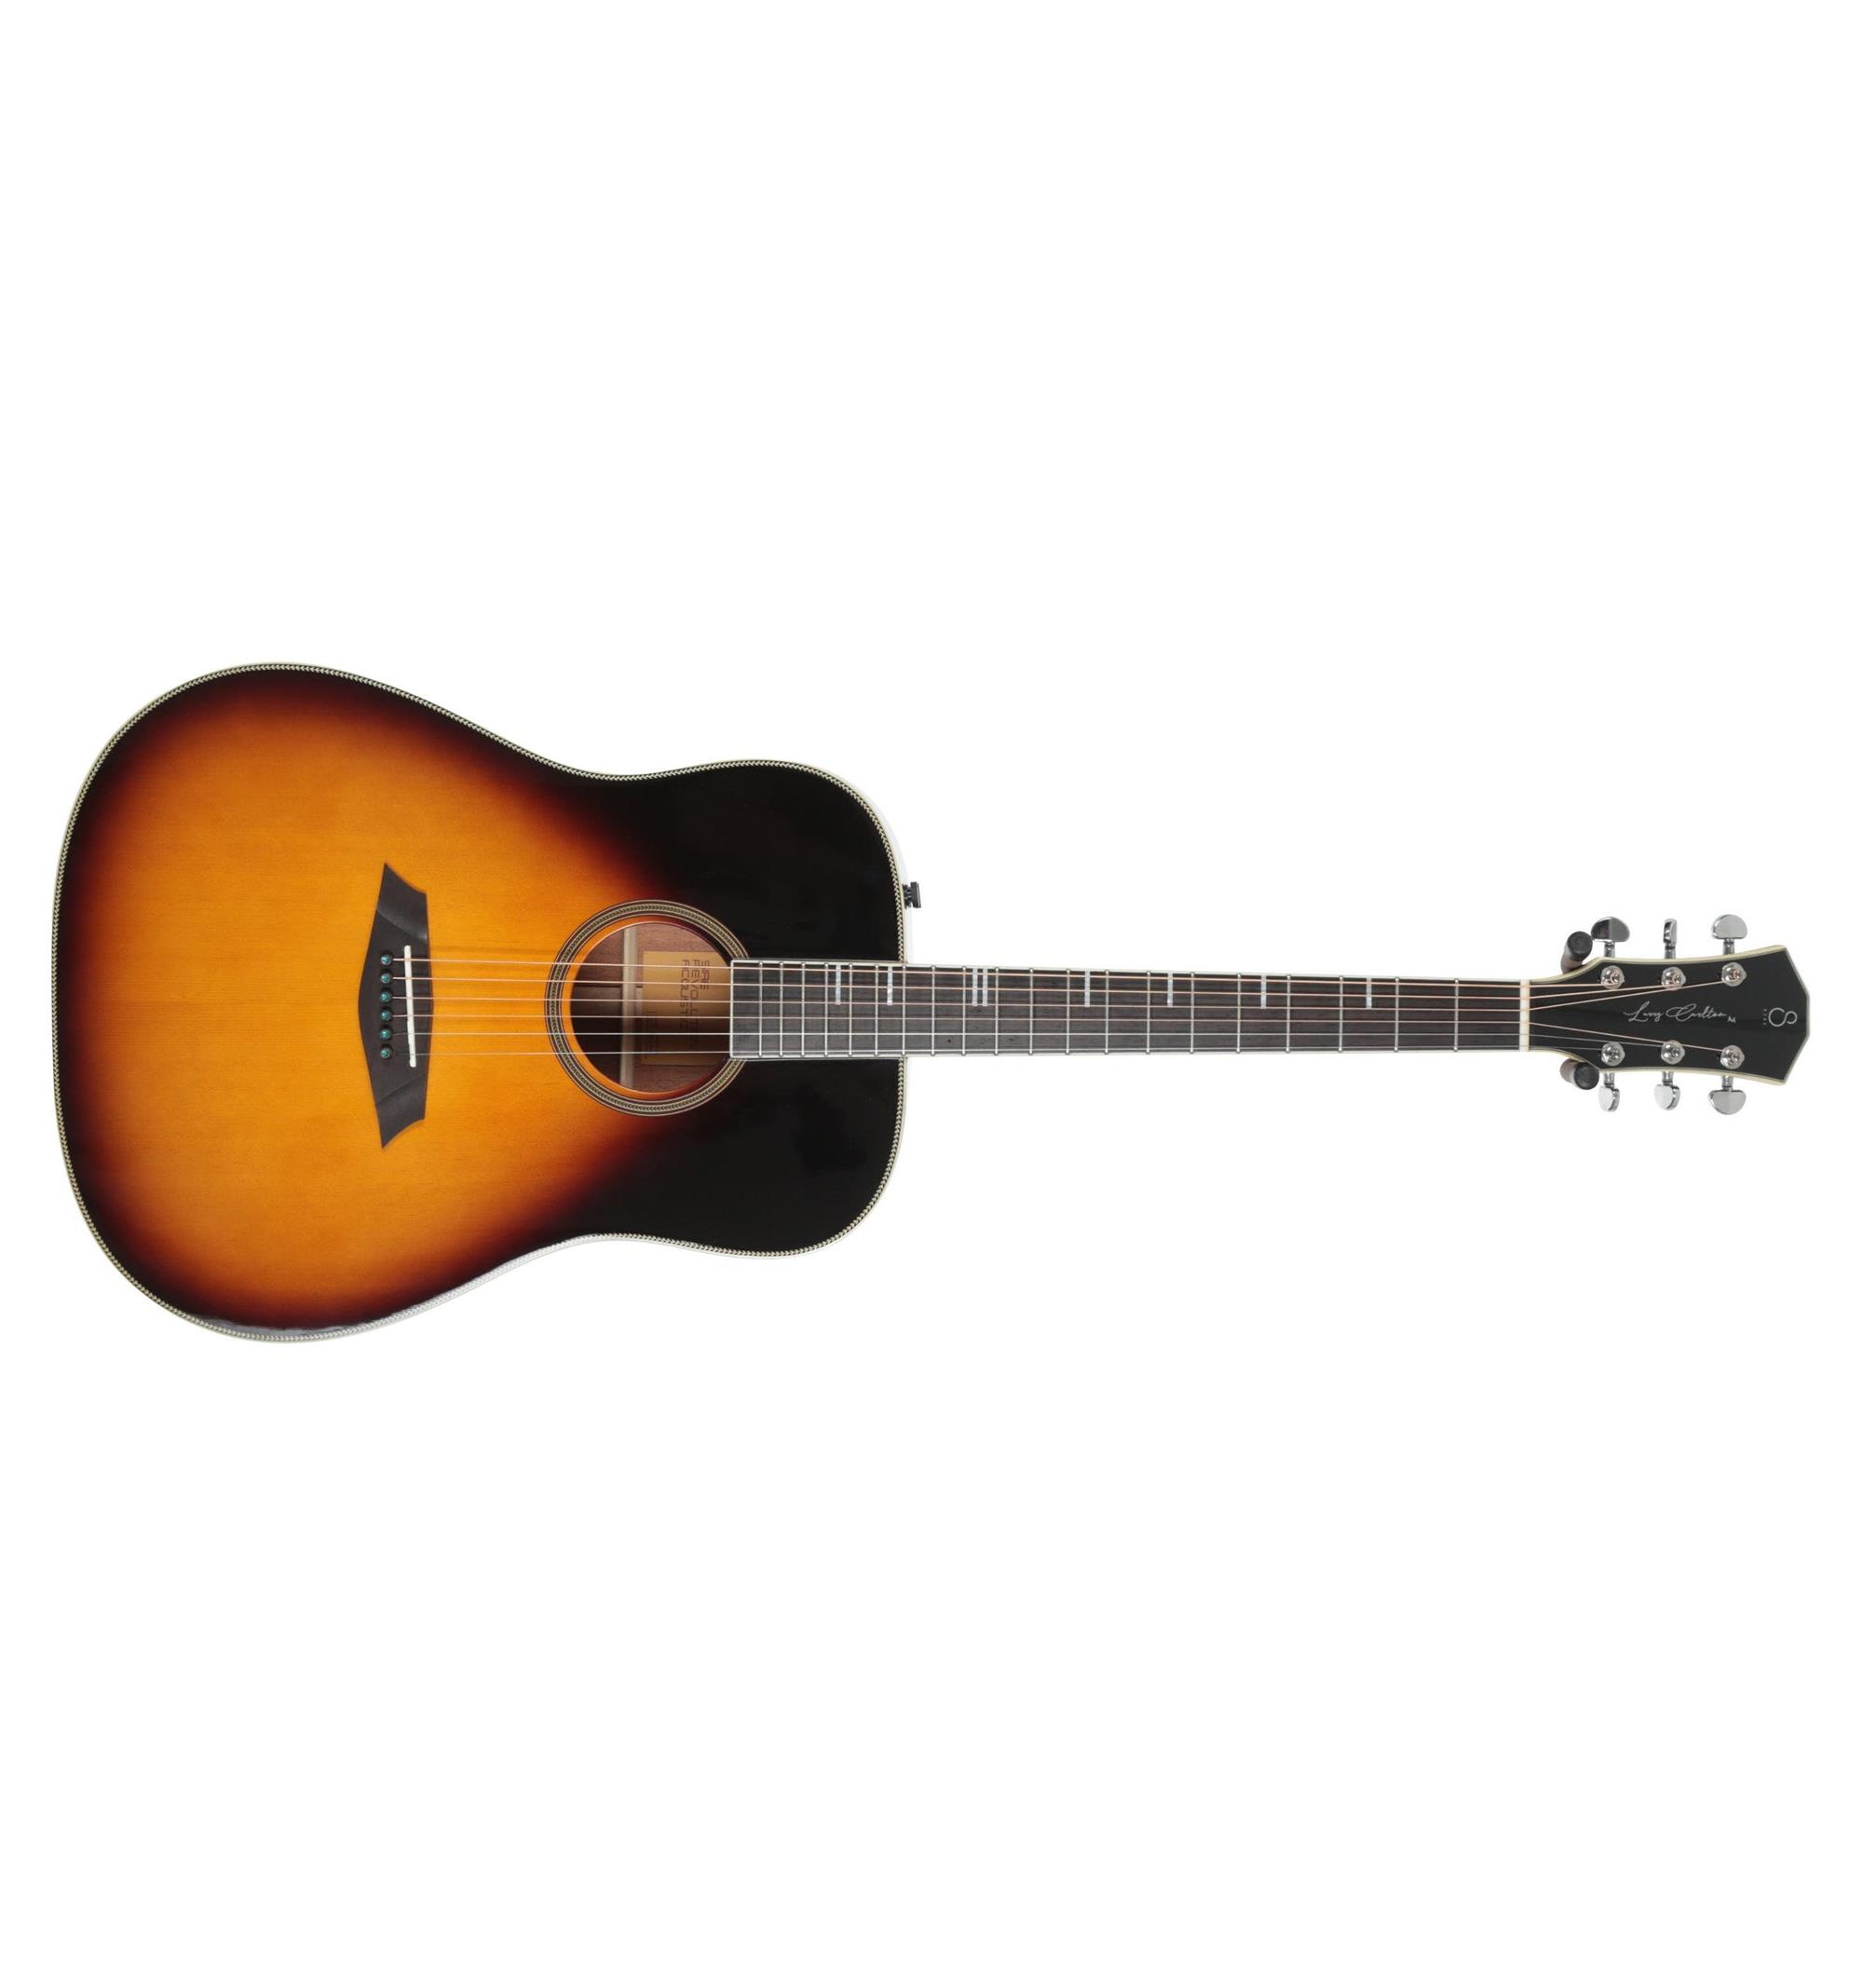 SIRE-LARRY-CARLTON-A4-D-DREADNOUGHT-SUNBURST-sku-24246